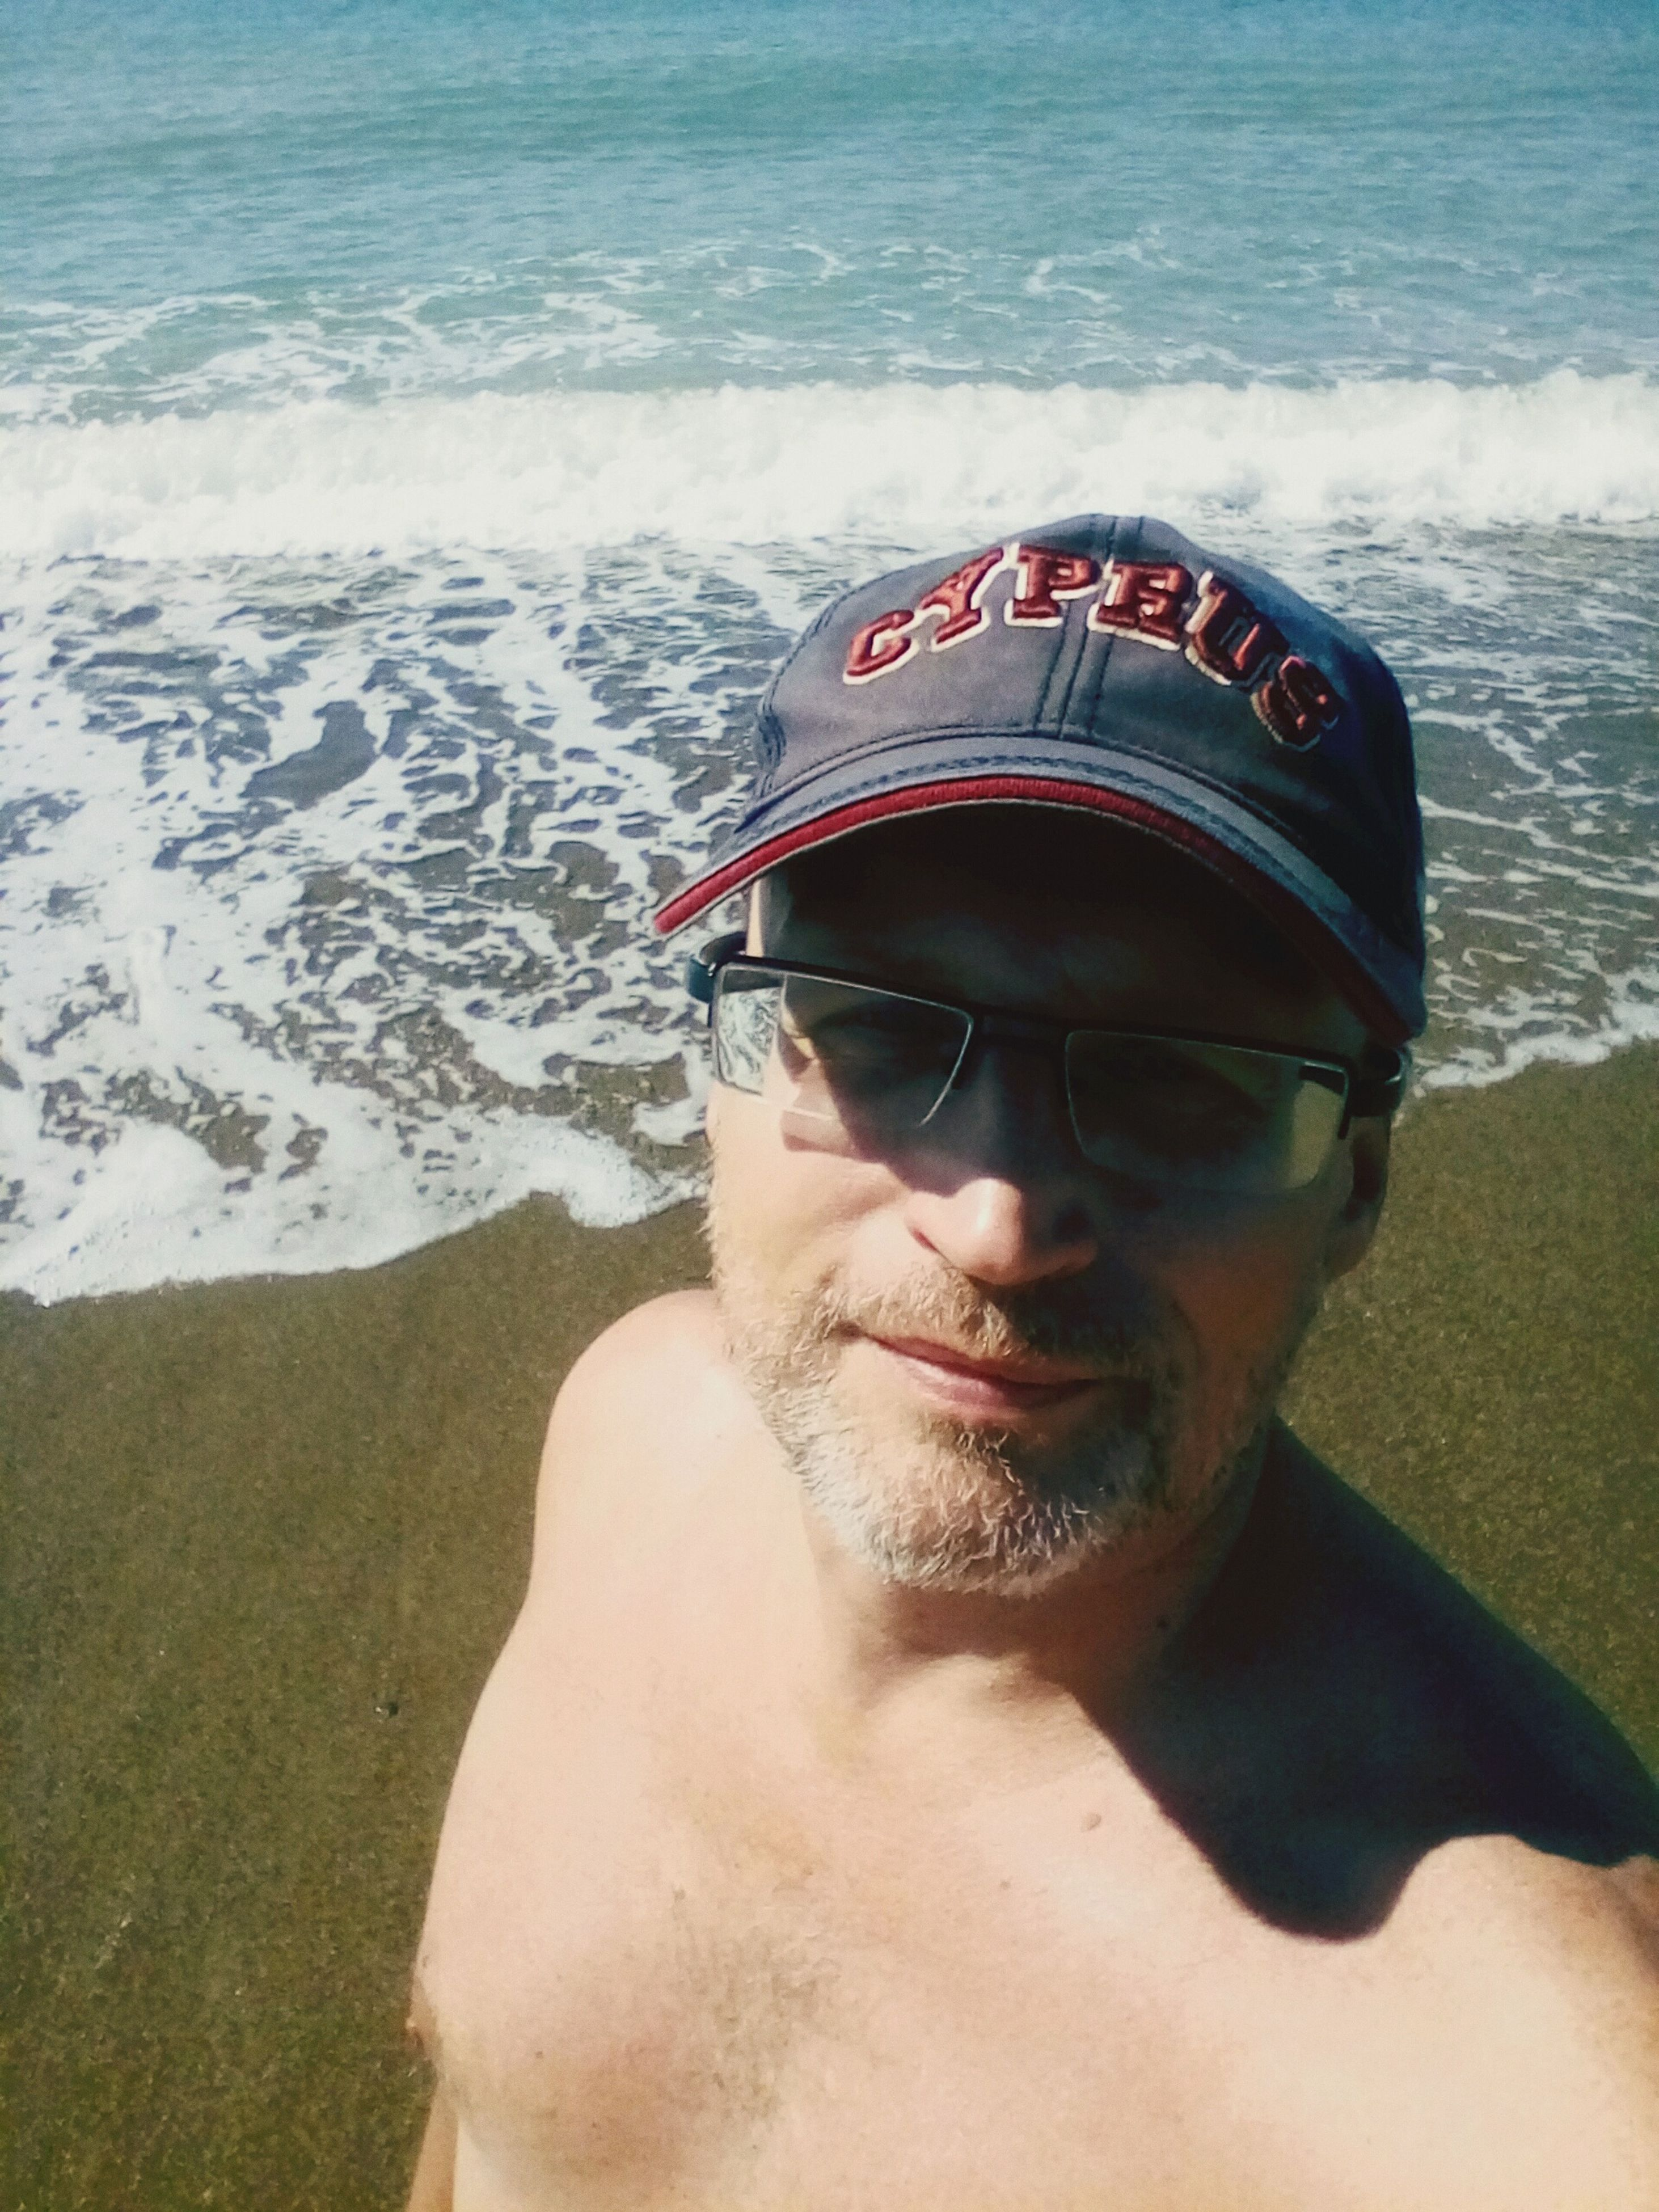 sea, real people, water, beach, shore, sunglasses, one person, sand, lifestyles, mid adult men, leisure activity, day, outdoors, portrait, looking at camera, nature, cap, young adult, wave, close-up, mammal